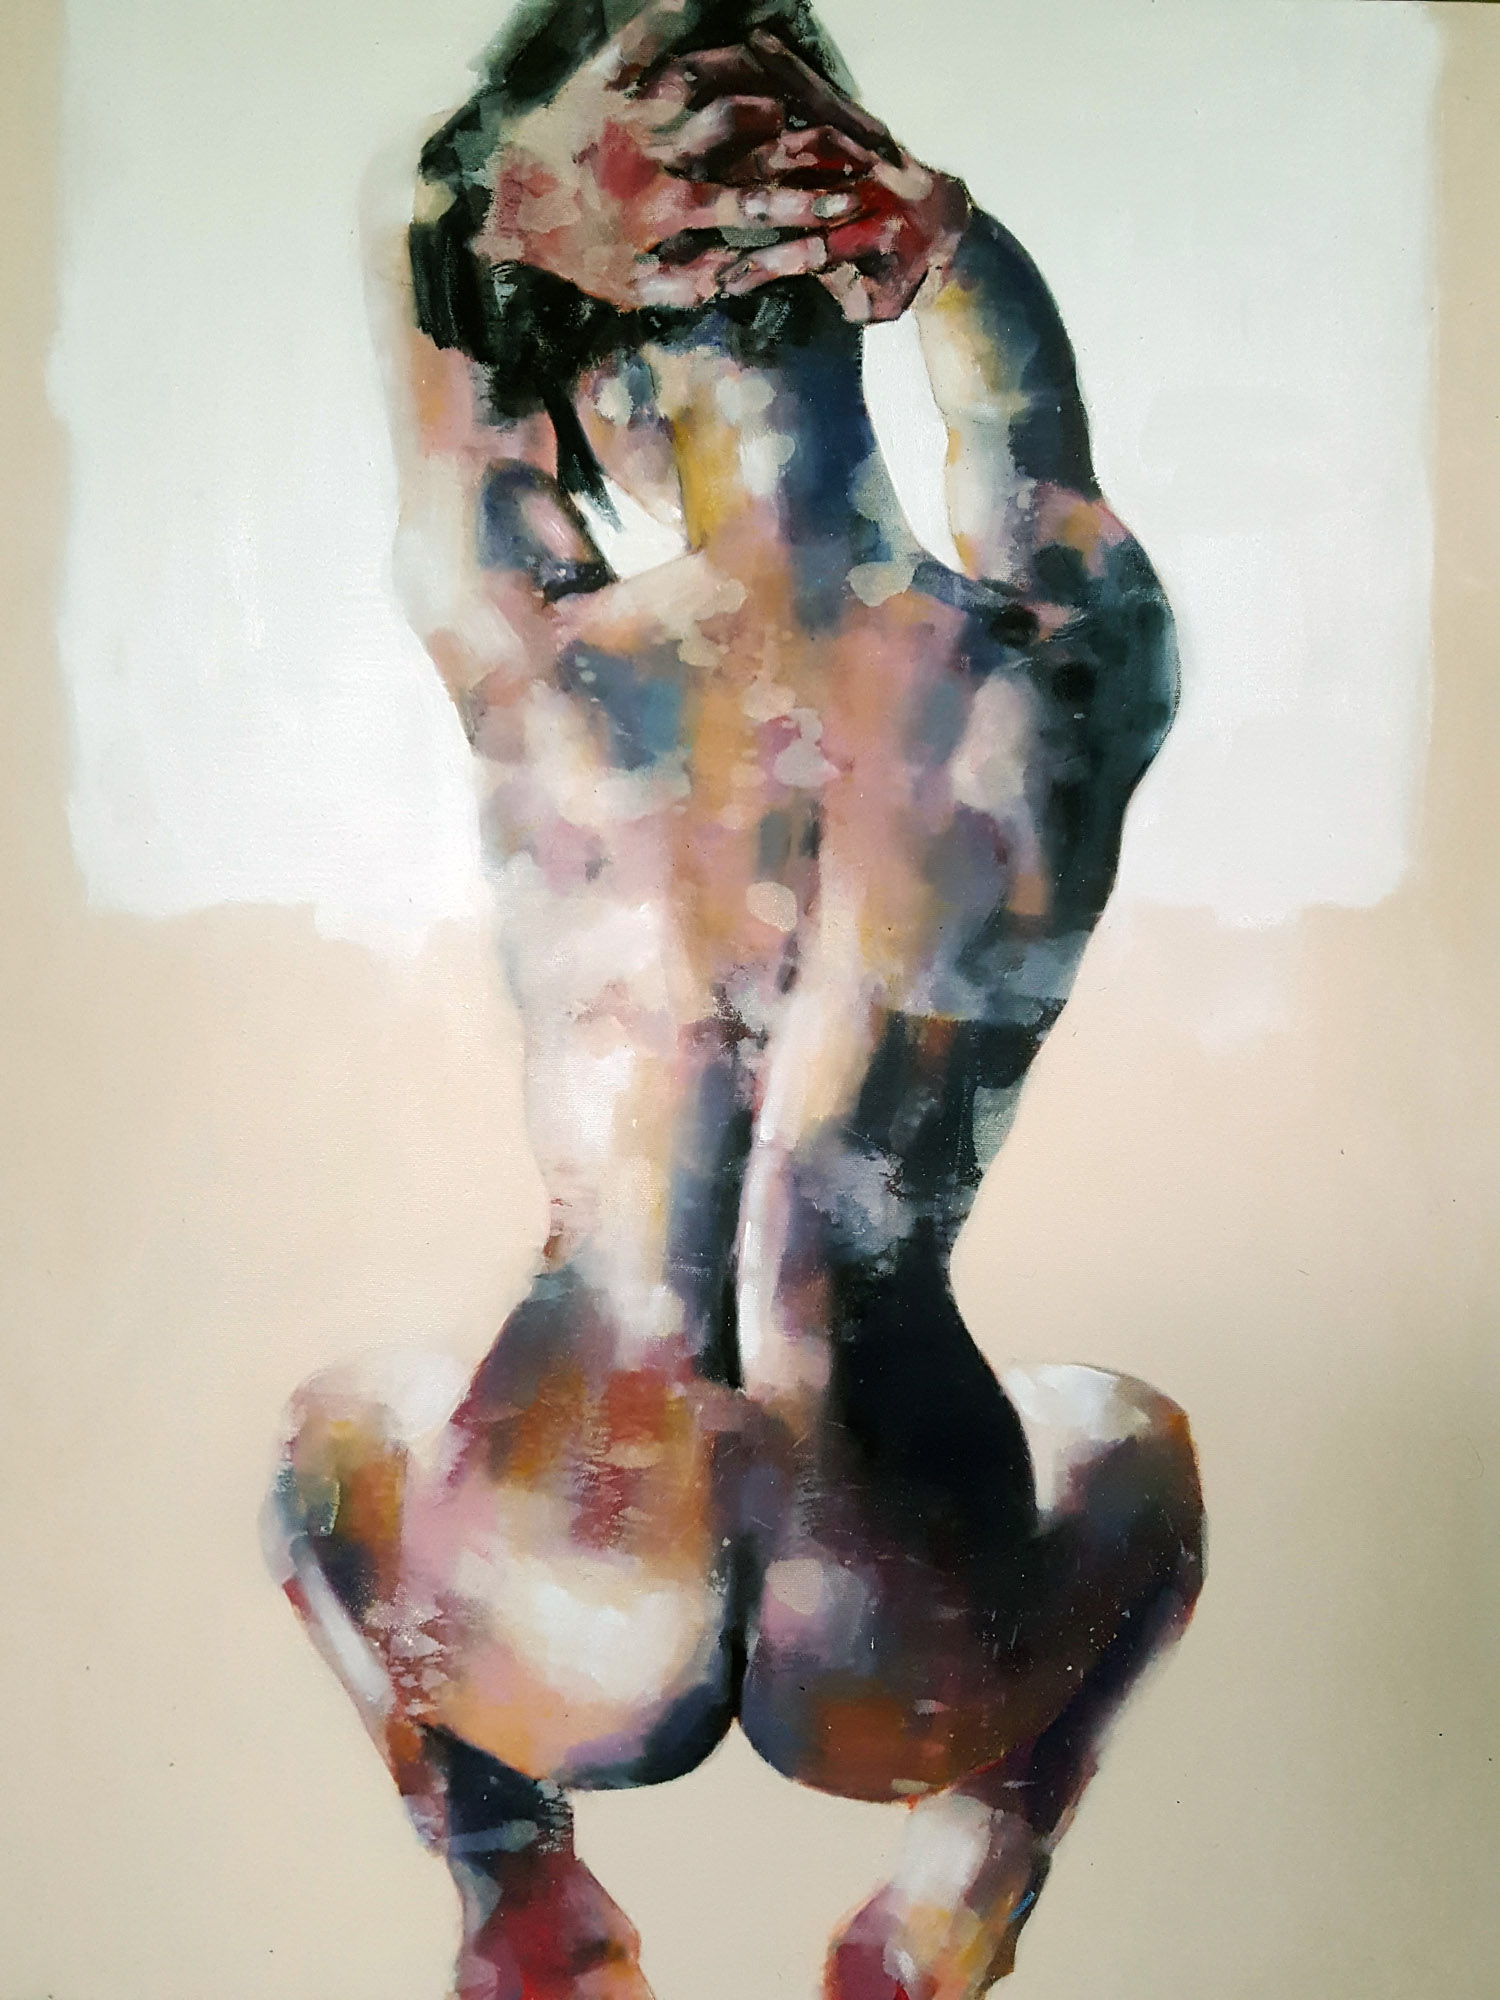 9-5-17 back study with hands, oil on canvas, 90x70cm